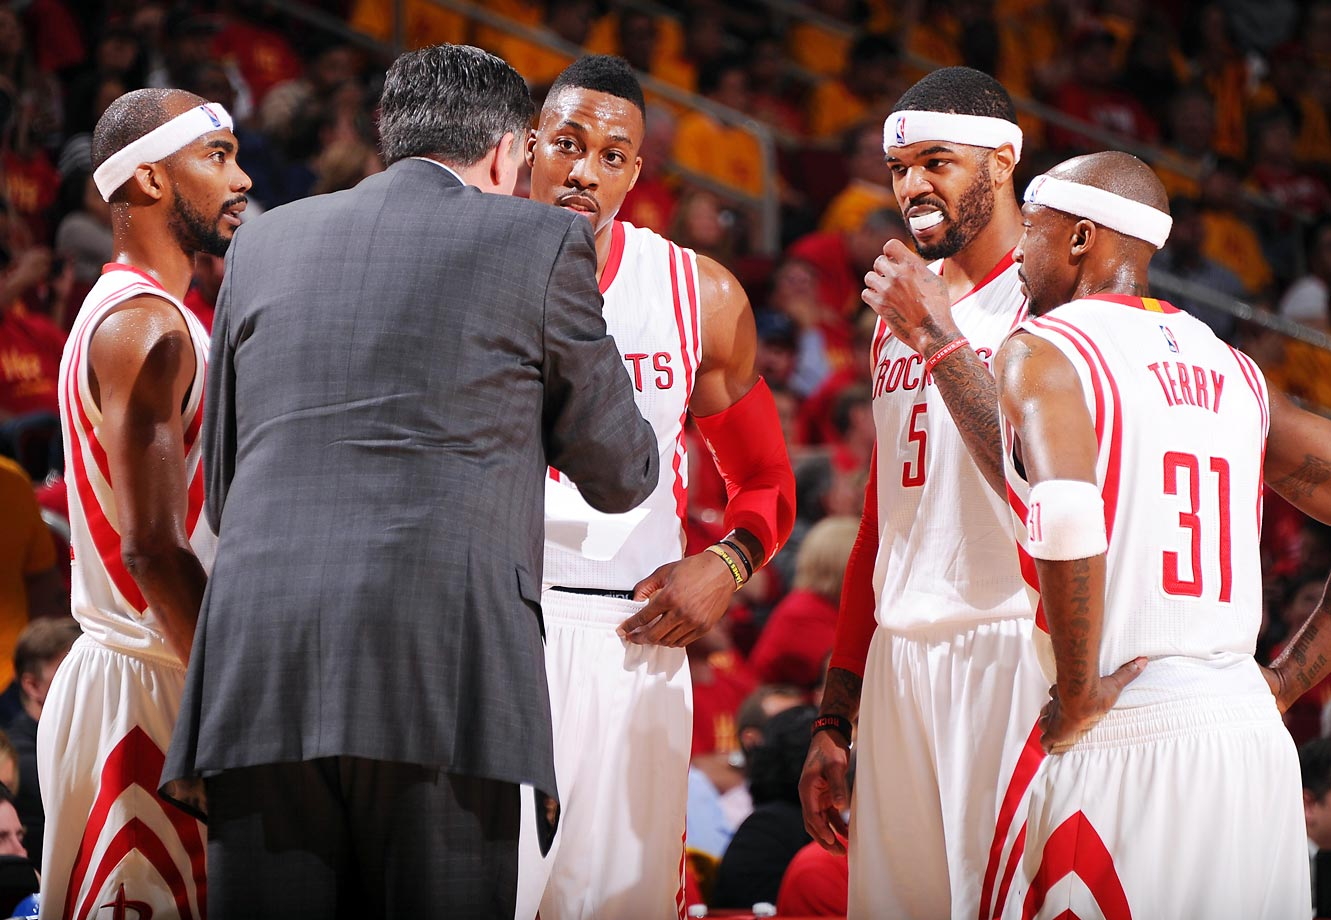 Corey Brewer, Dwight Howard, Josh Smith and Jason Terry